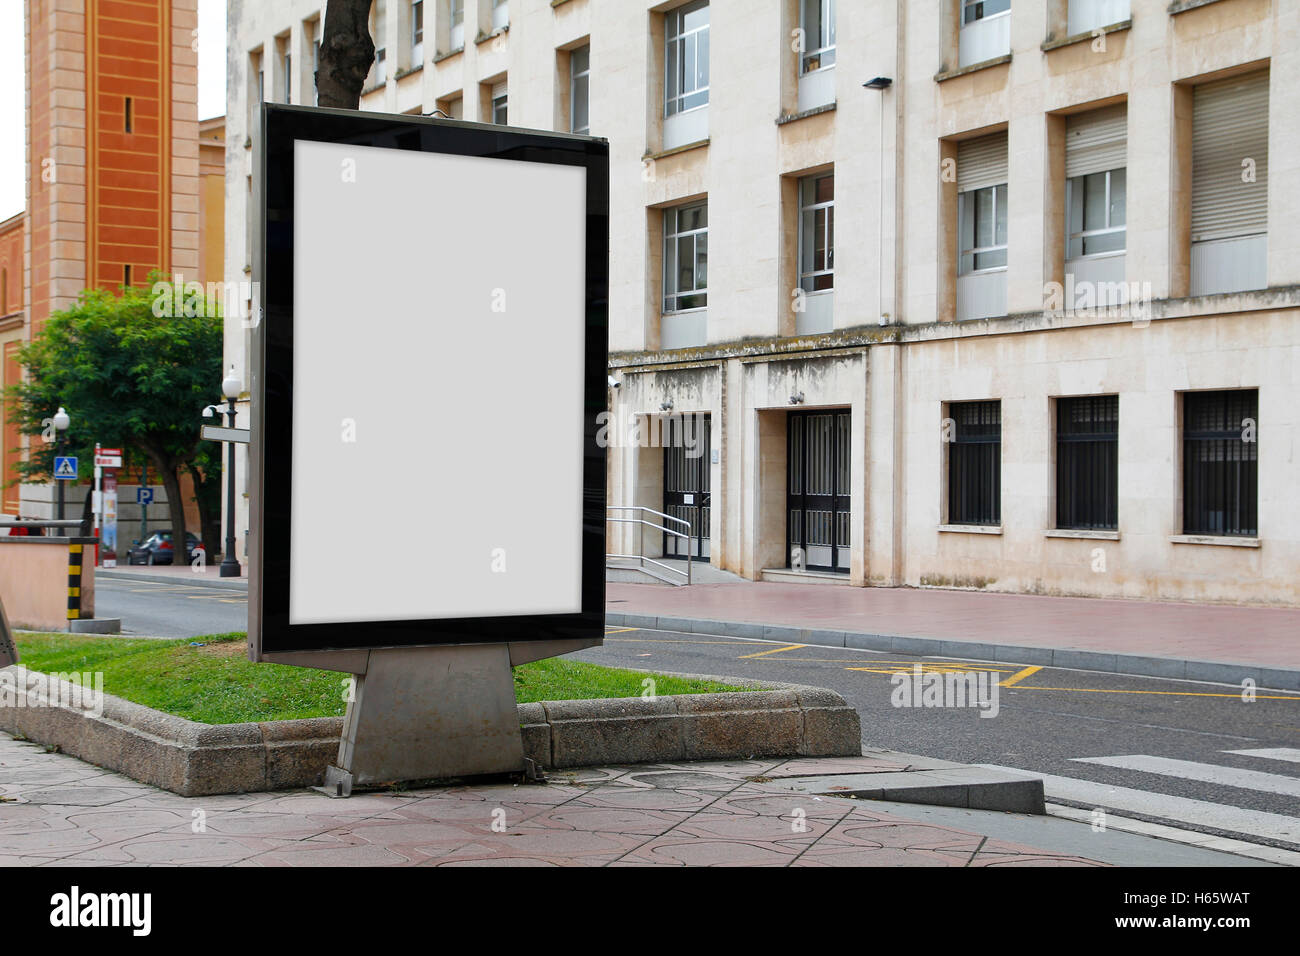 Blank billboard mock up in the street, in front of a building Stock Photo